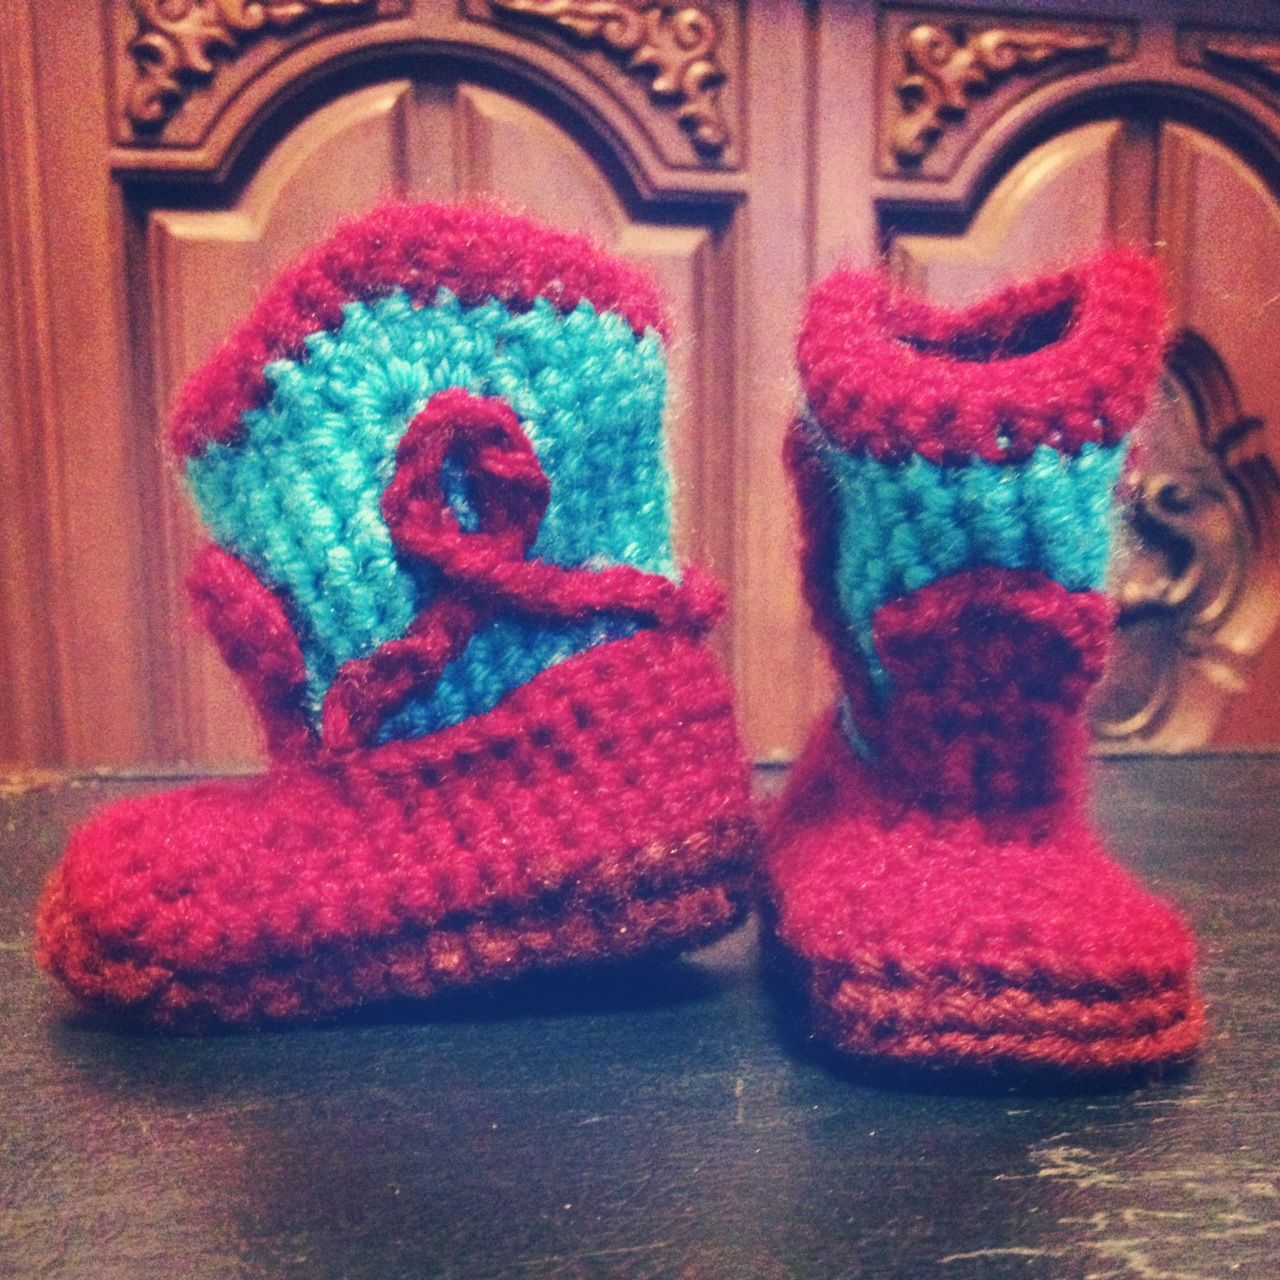 Cowboy Booties Inspiration:   http://www.ravelry.com/patterns/library/cowboy-boots